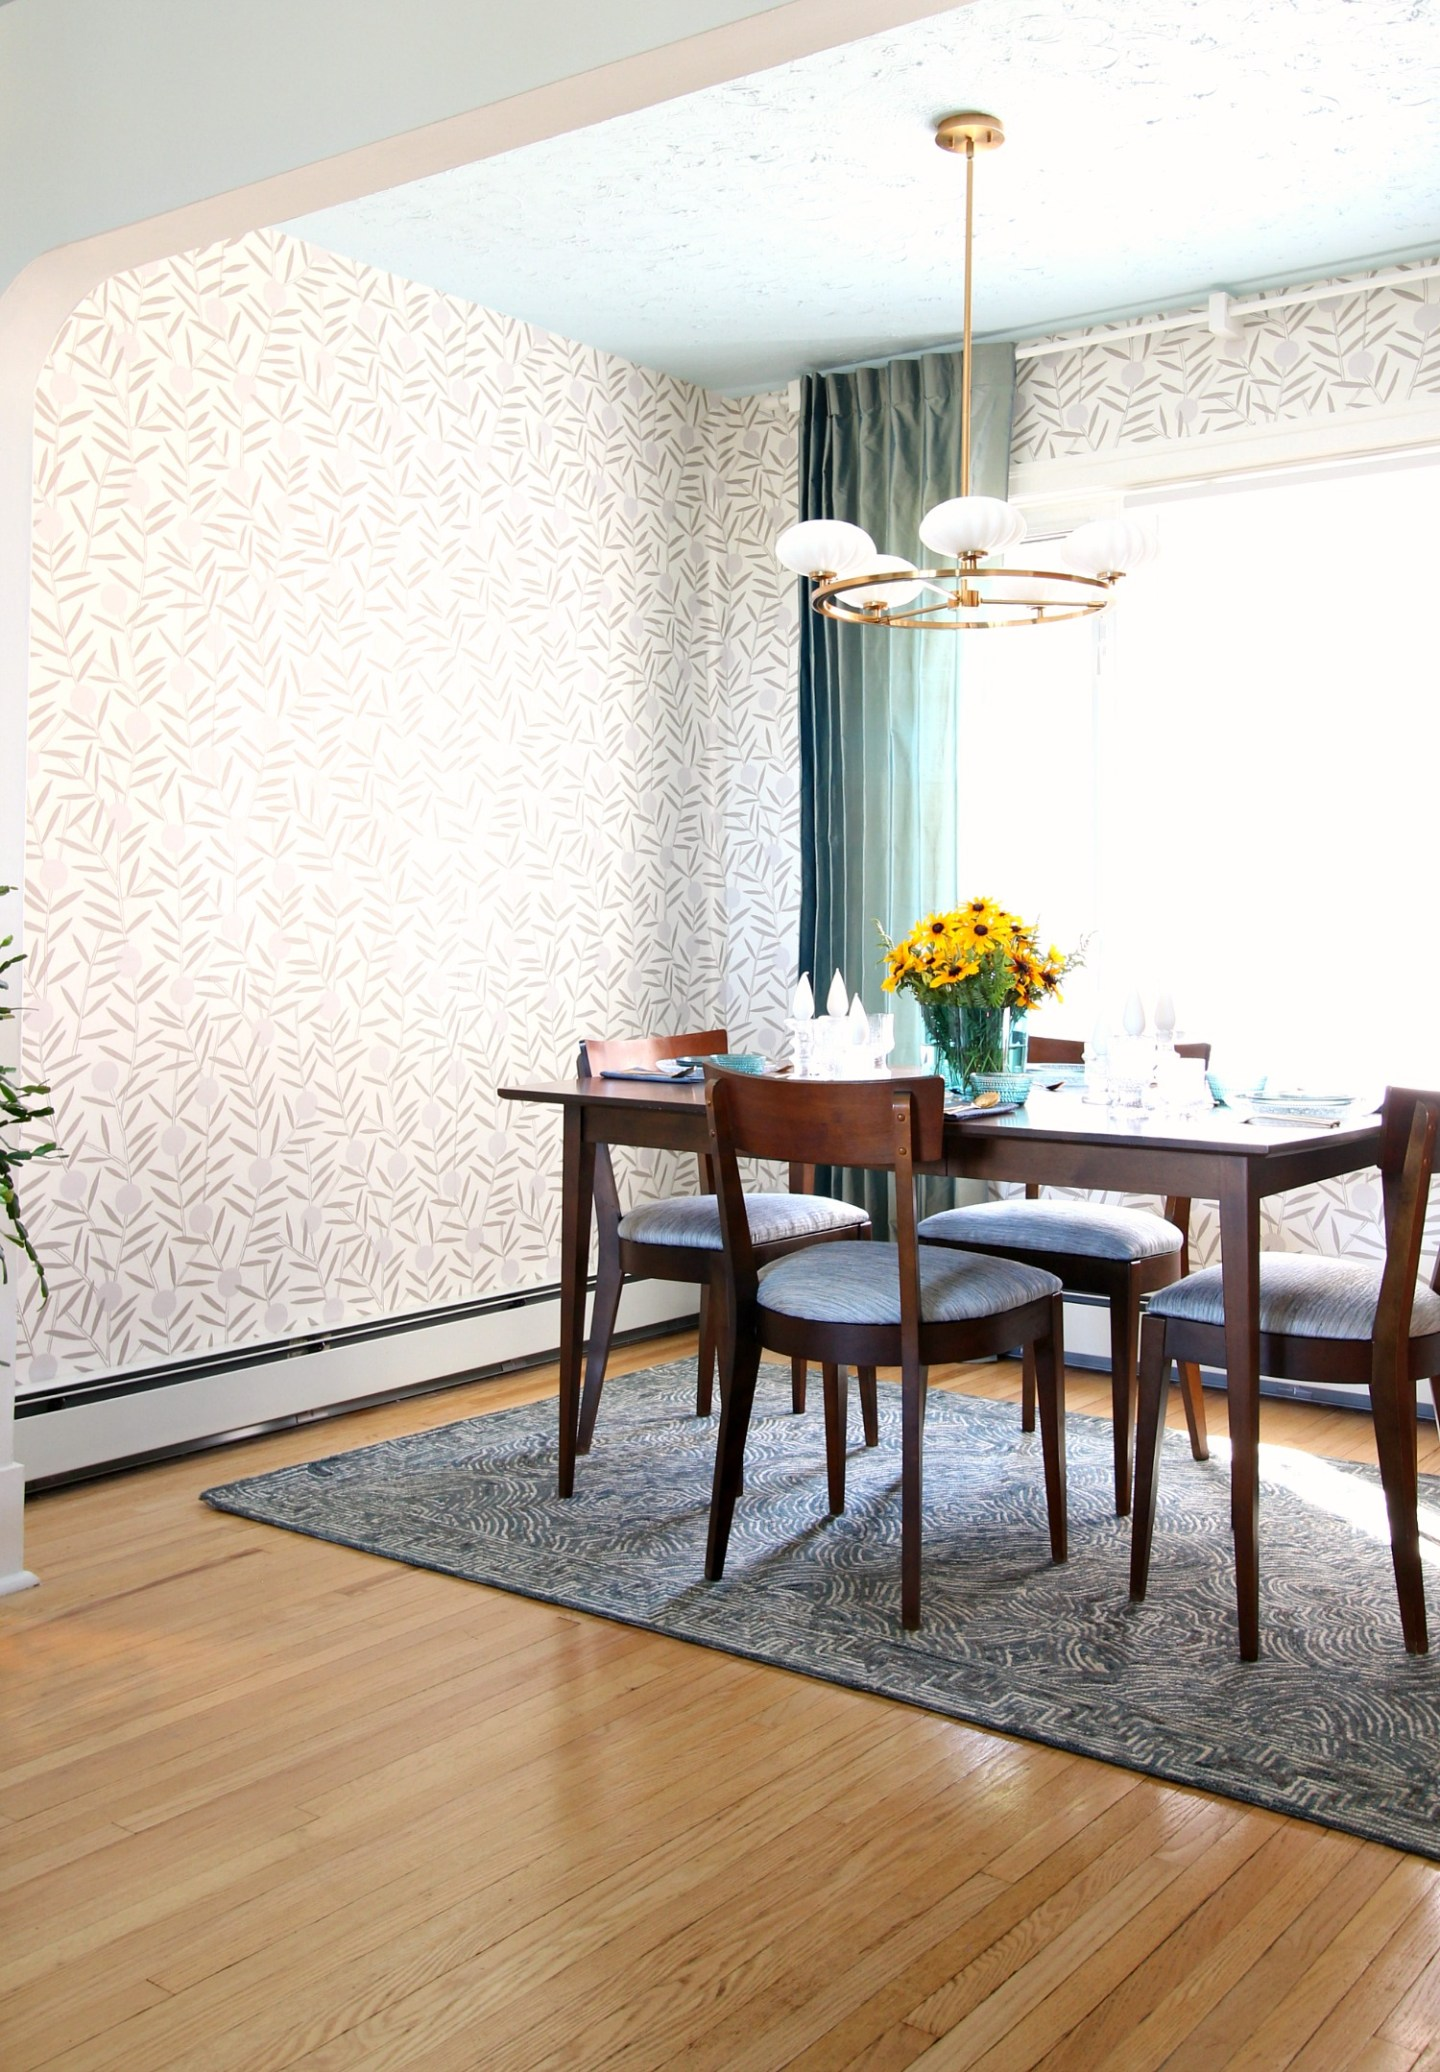 How to Hang Hygge & West Wallpaper (Non-Pasted Wallpaper Installation DIY)